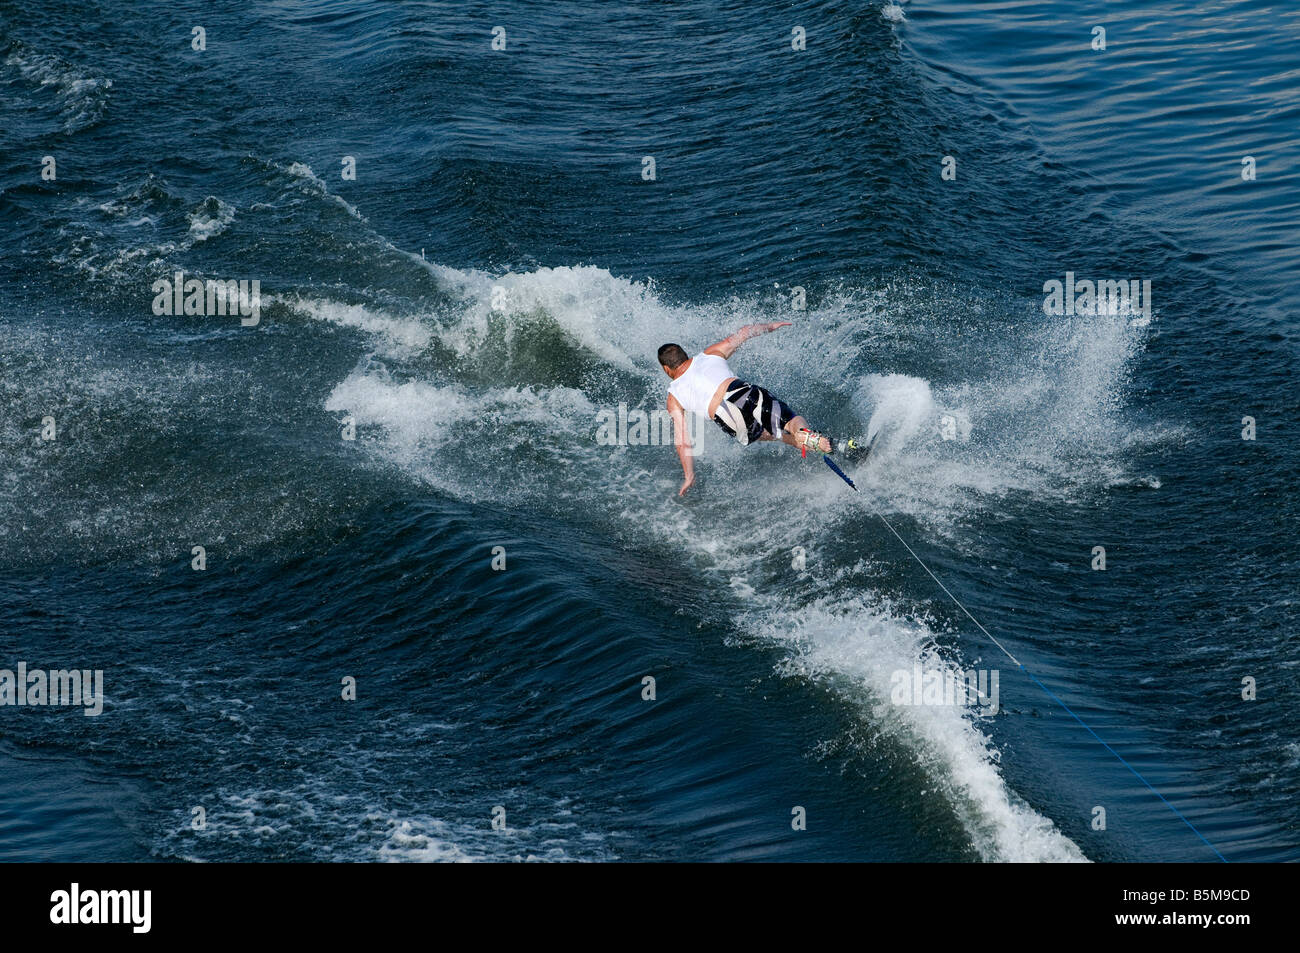 Waterskier in action at waterski and wakeboard competition in Putrajaya, Malaysia. - Stock Image